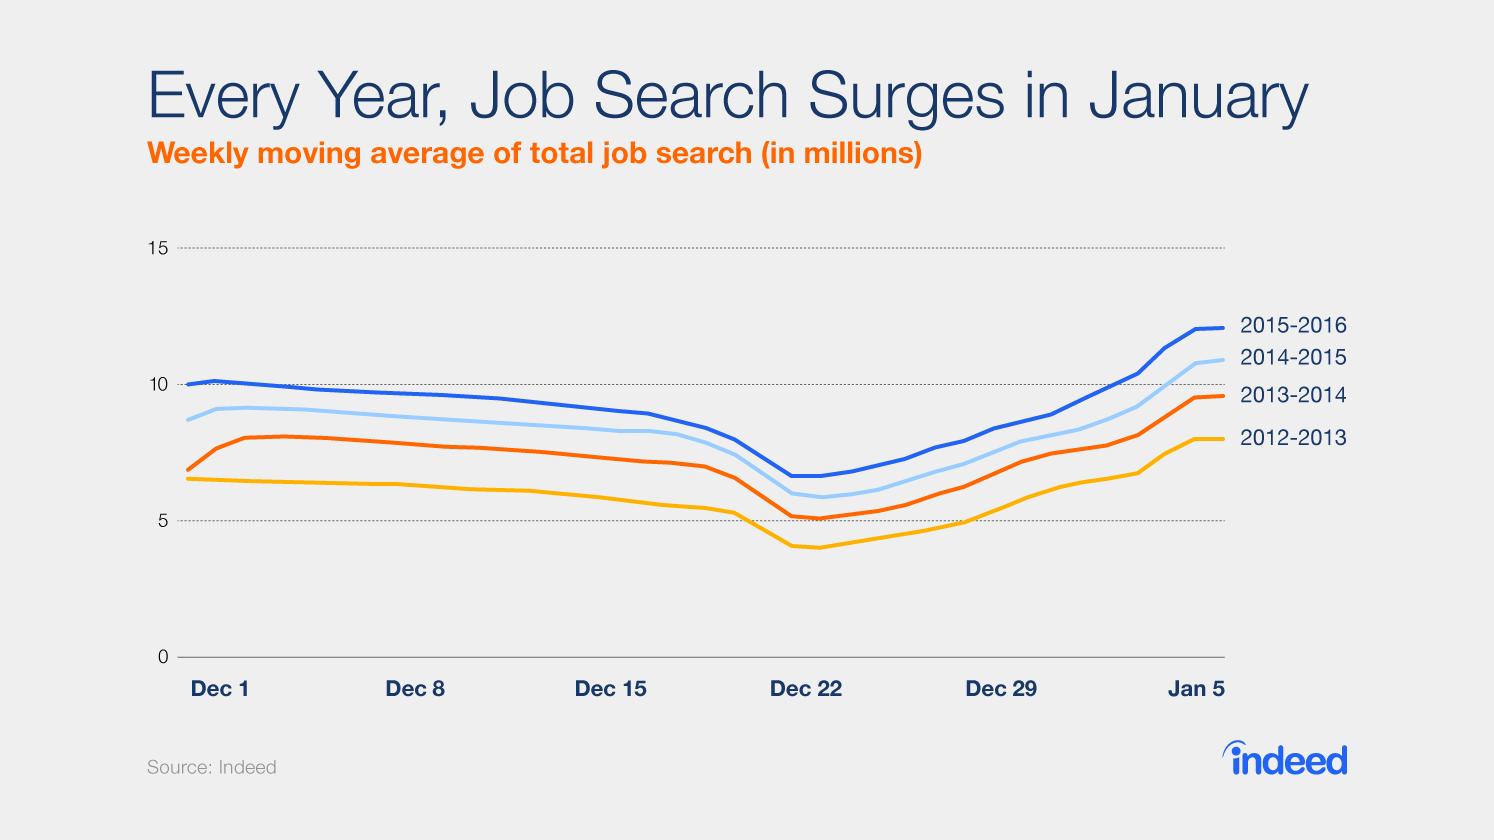 Job search surges in January every year. This year, search increased by 43%.